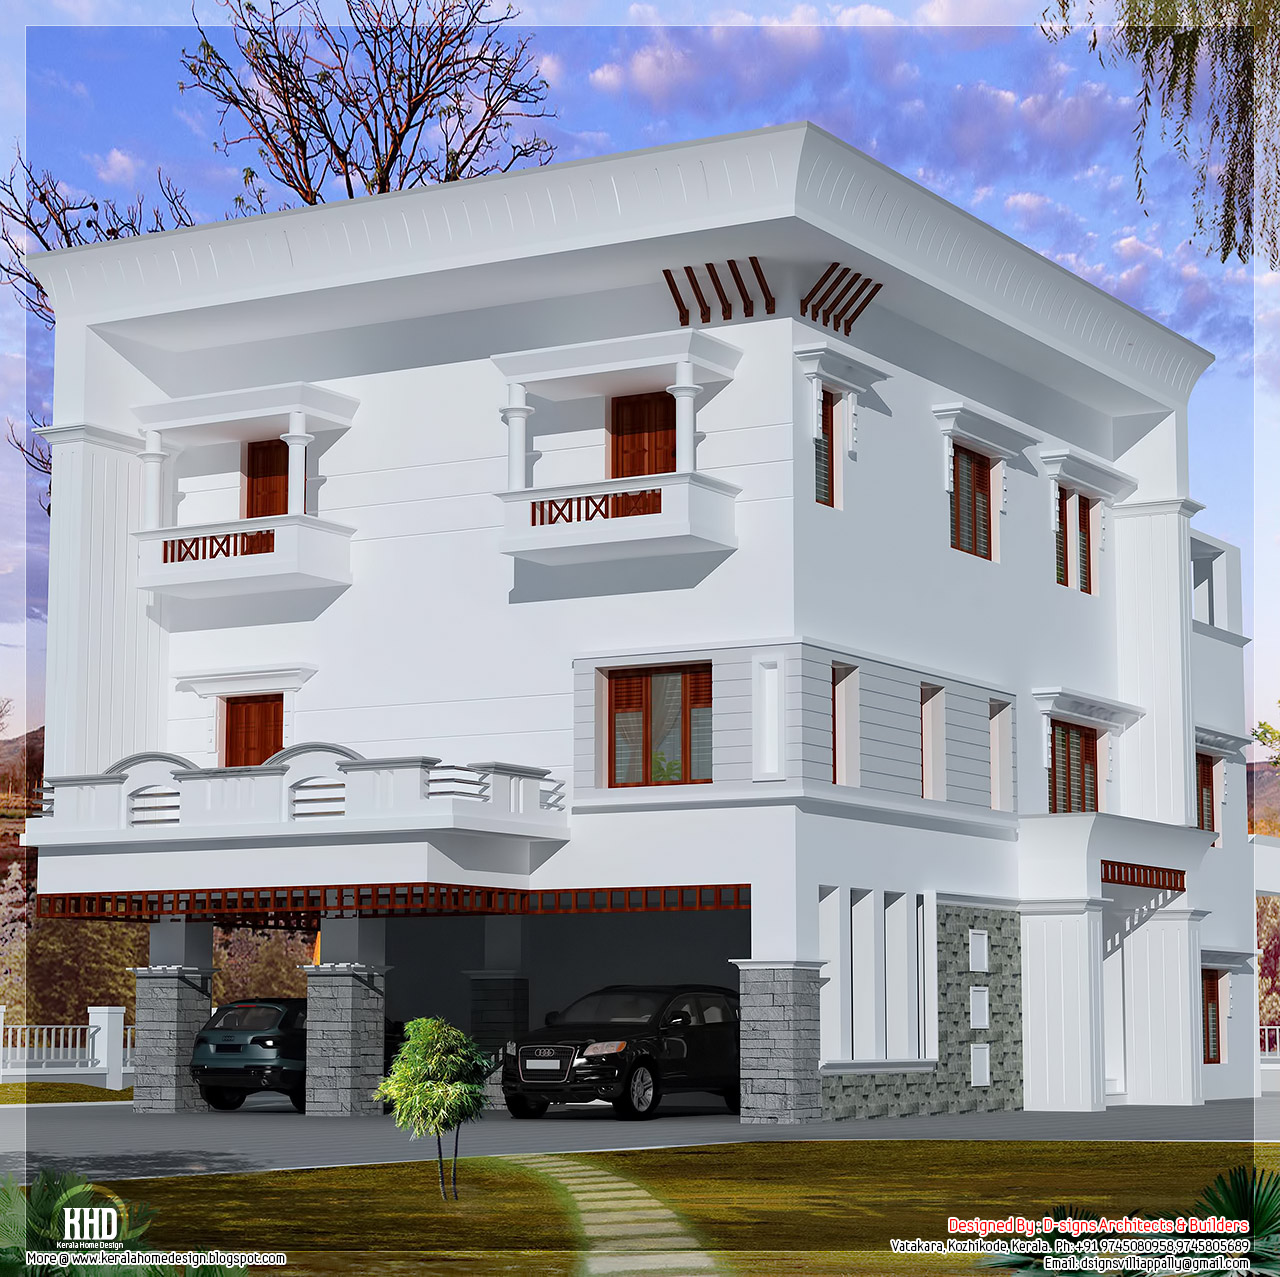 3 storey flat roof home design kerala home design and for Storey house designs